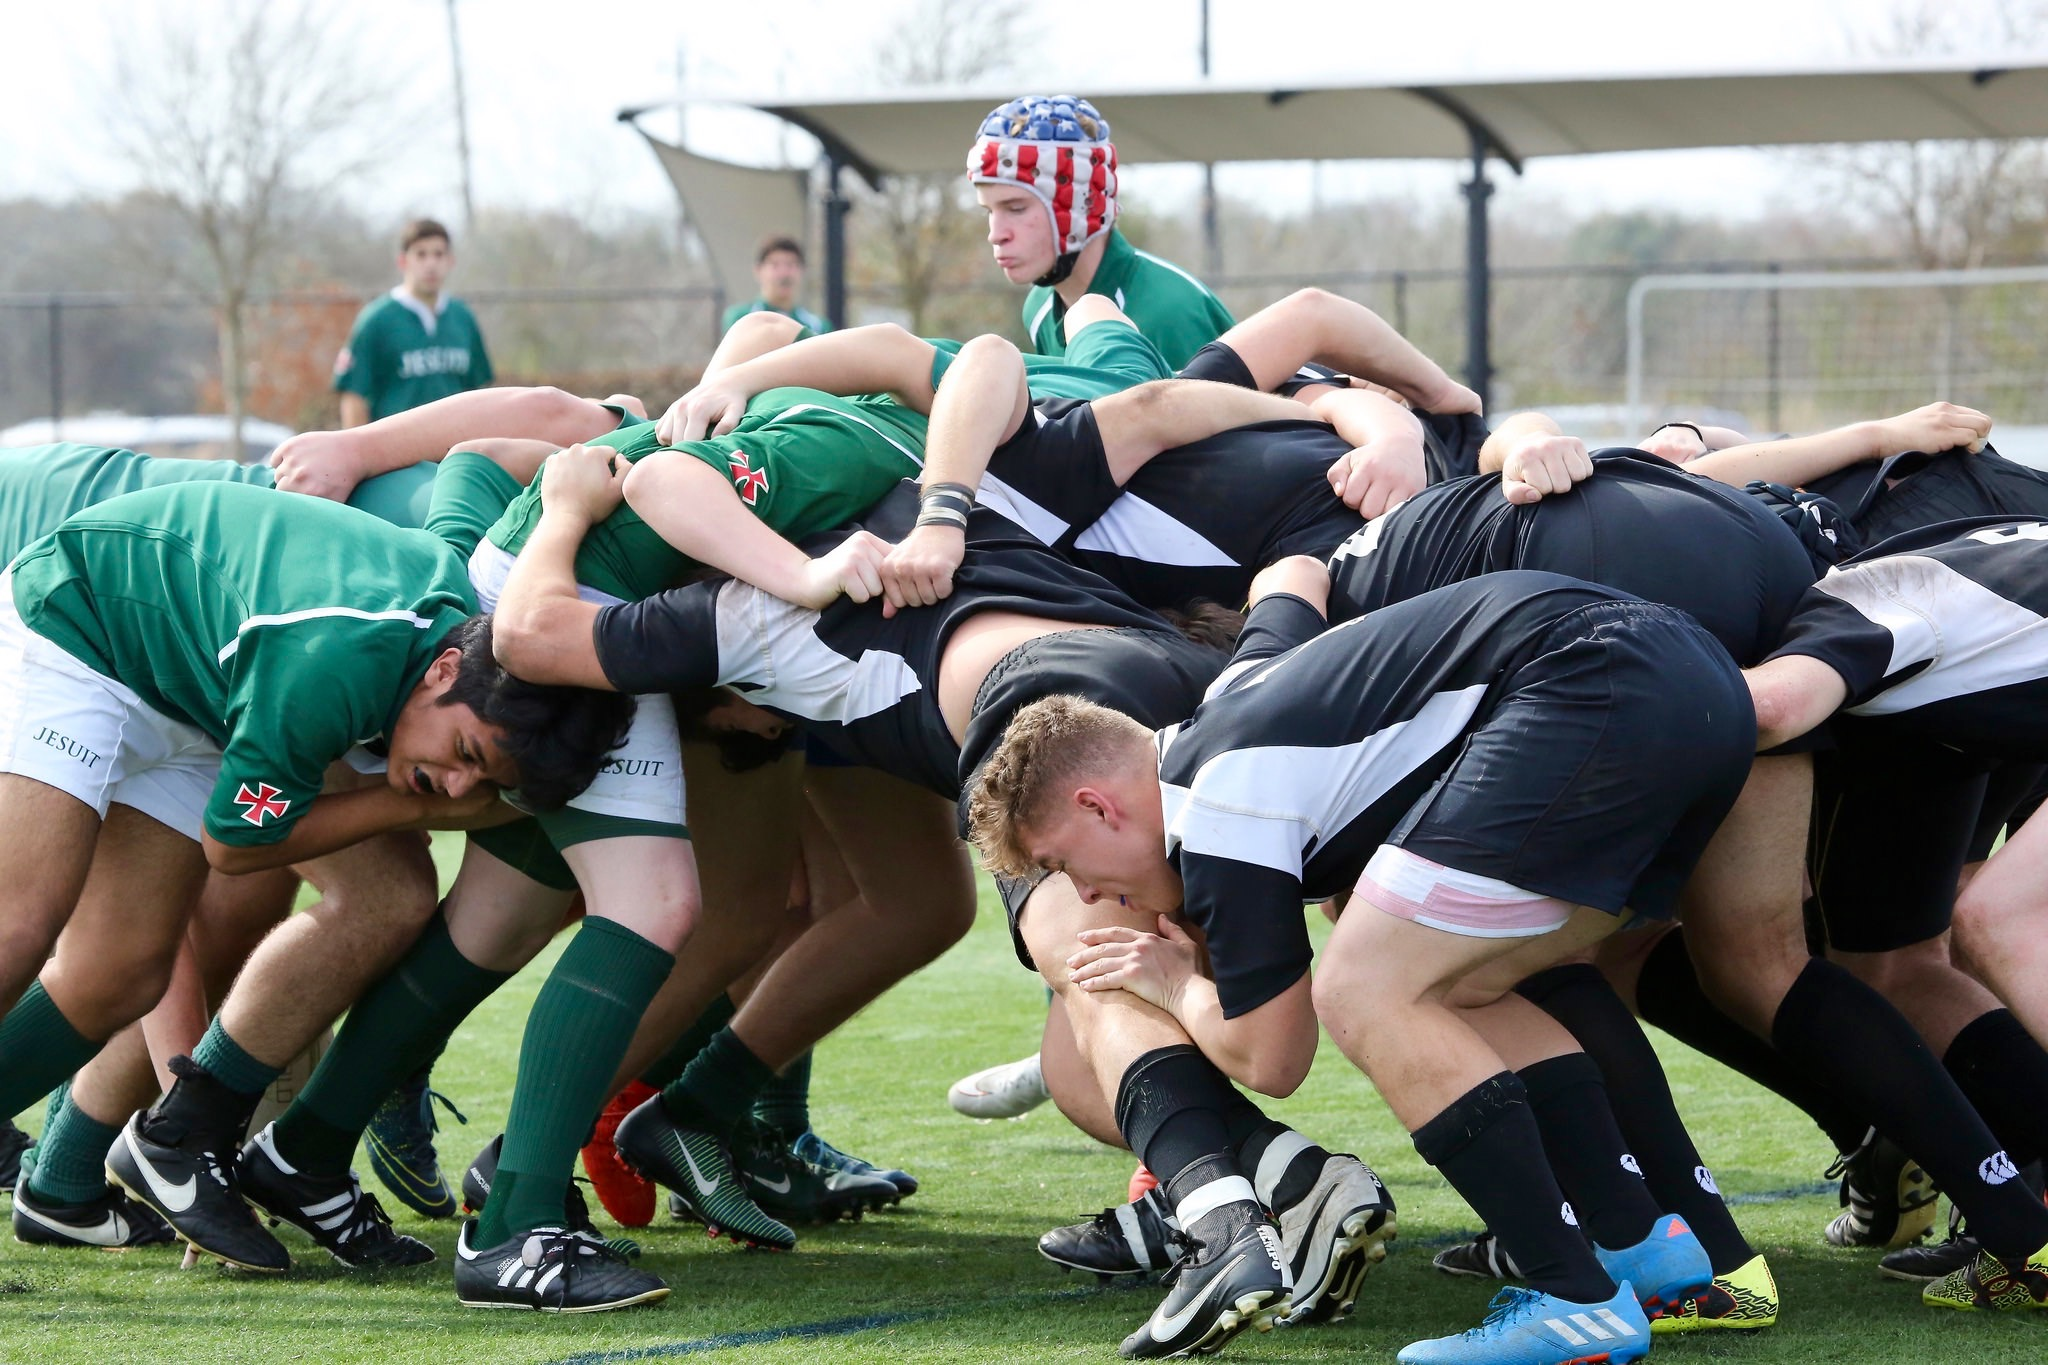 Strake Jesuit scrum with Four Points. Rugby Texas action 2017. Elizabeth Pardee photo.